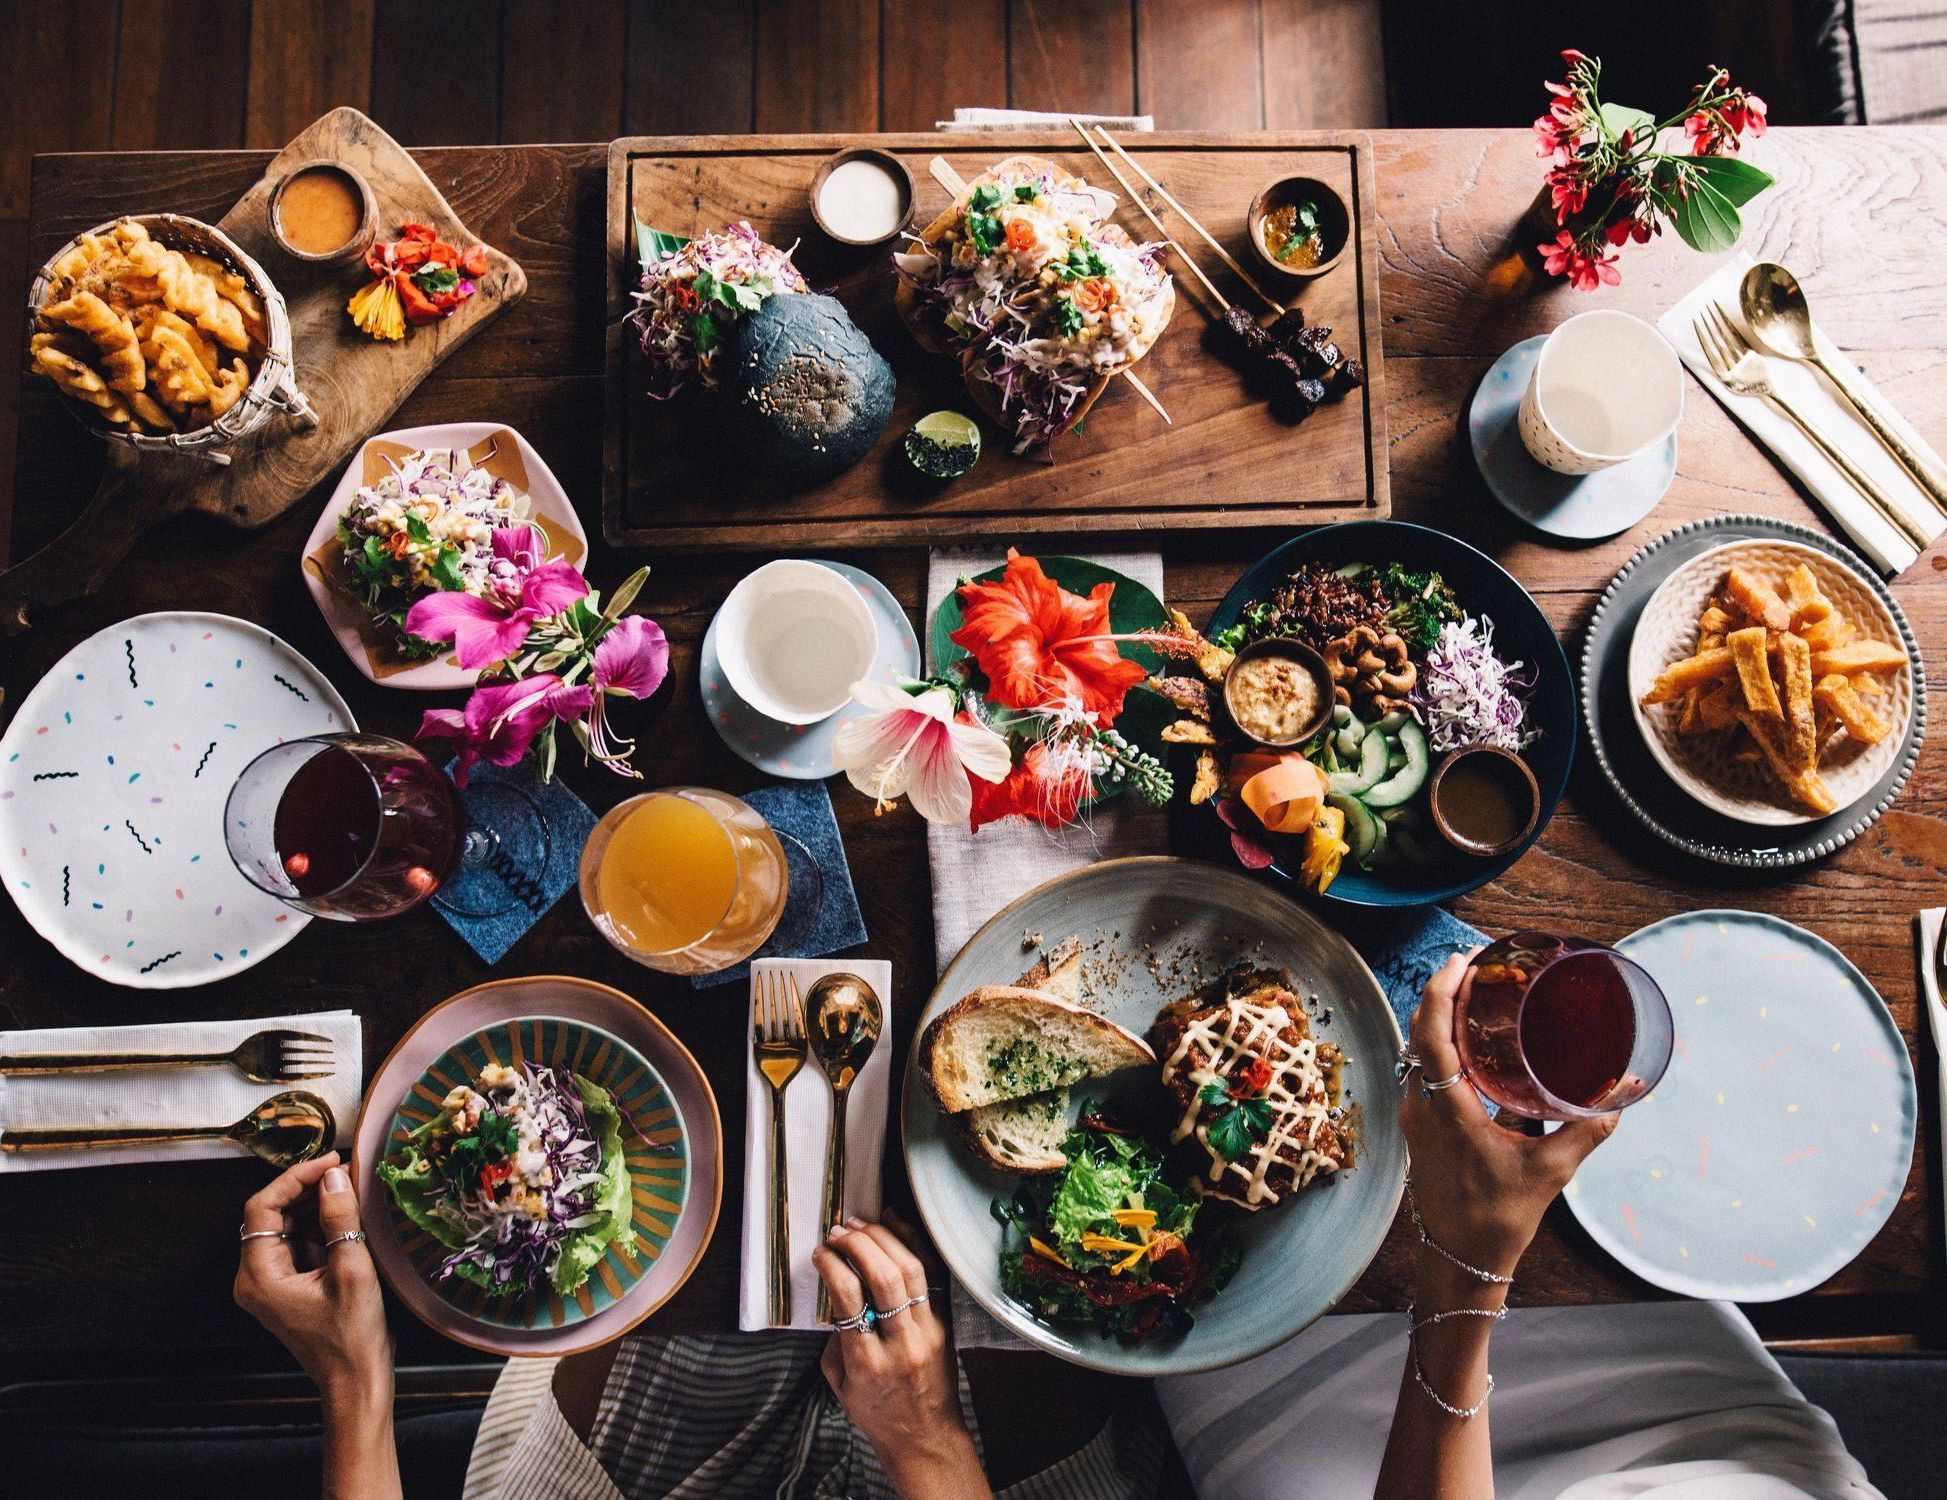 7 Healthy Eating Spots To Visit In Bali